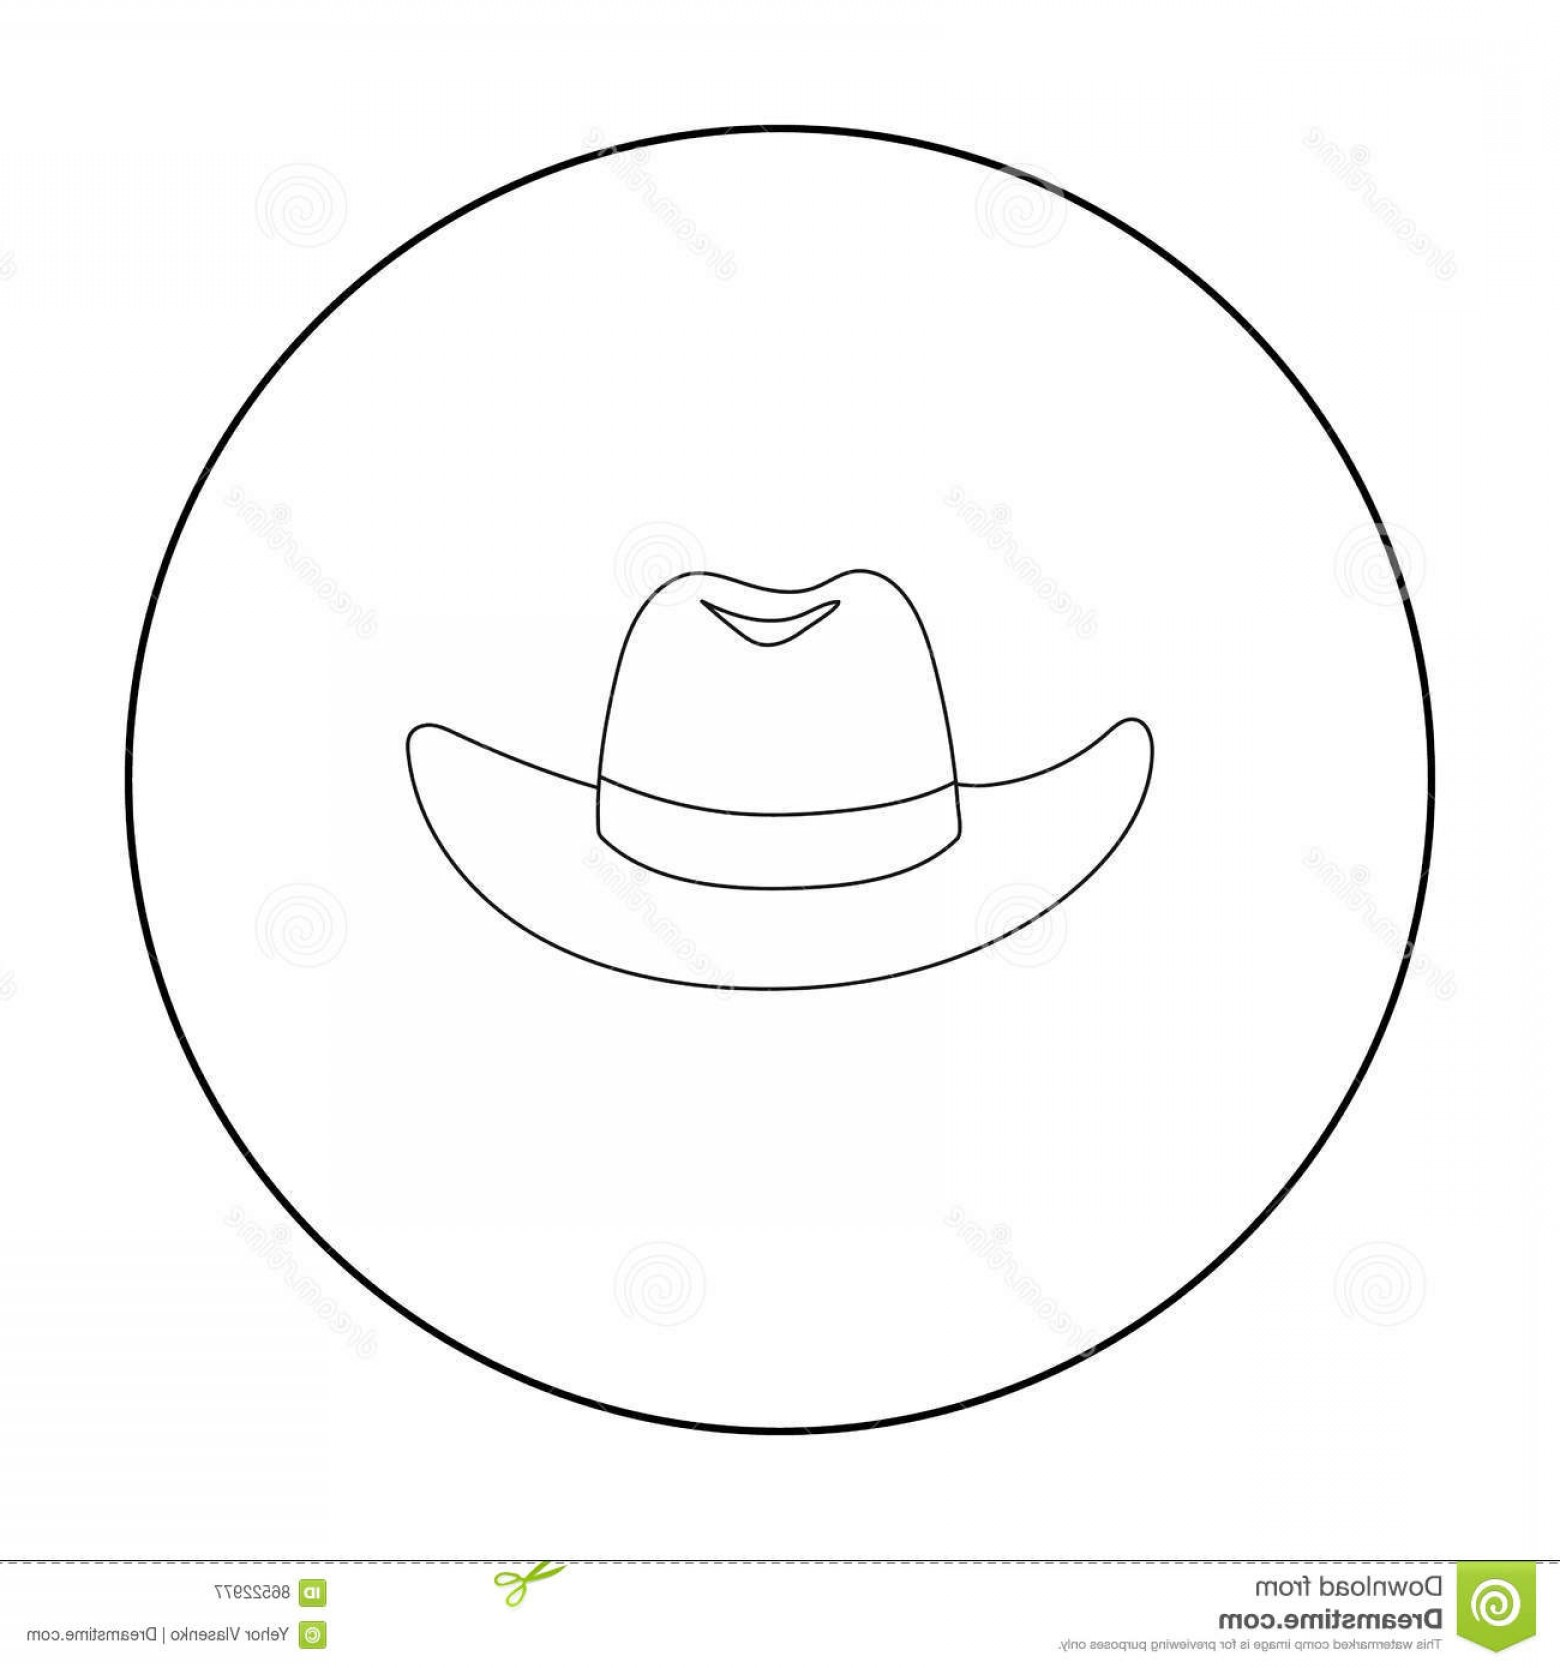 Sombrero Vector Outline: Stock Illustration Cowboy Hat Icon Outline Style Isolated White Background Hats Symbol Stock Vector Illustration Image